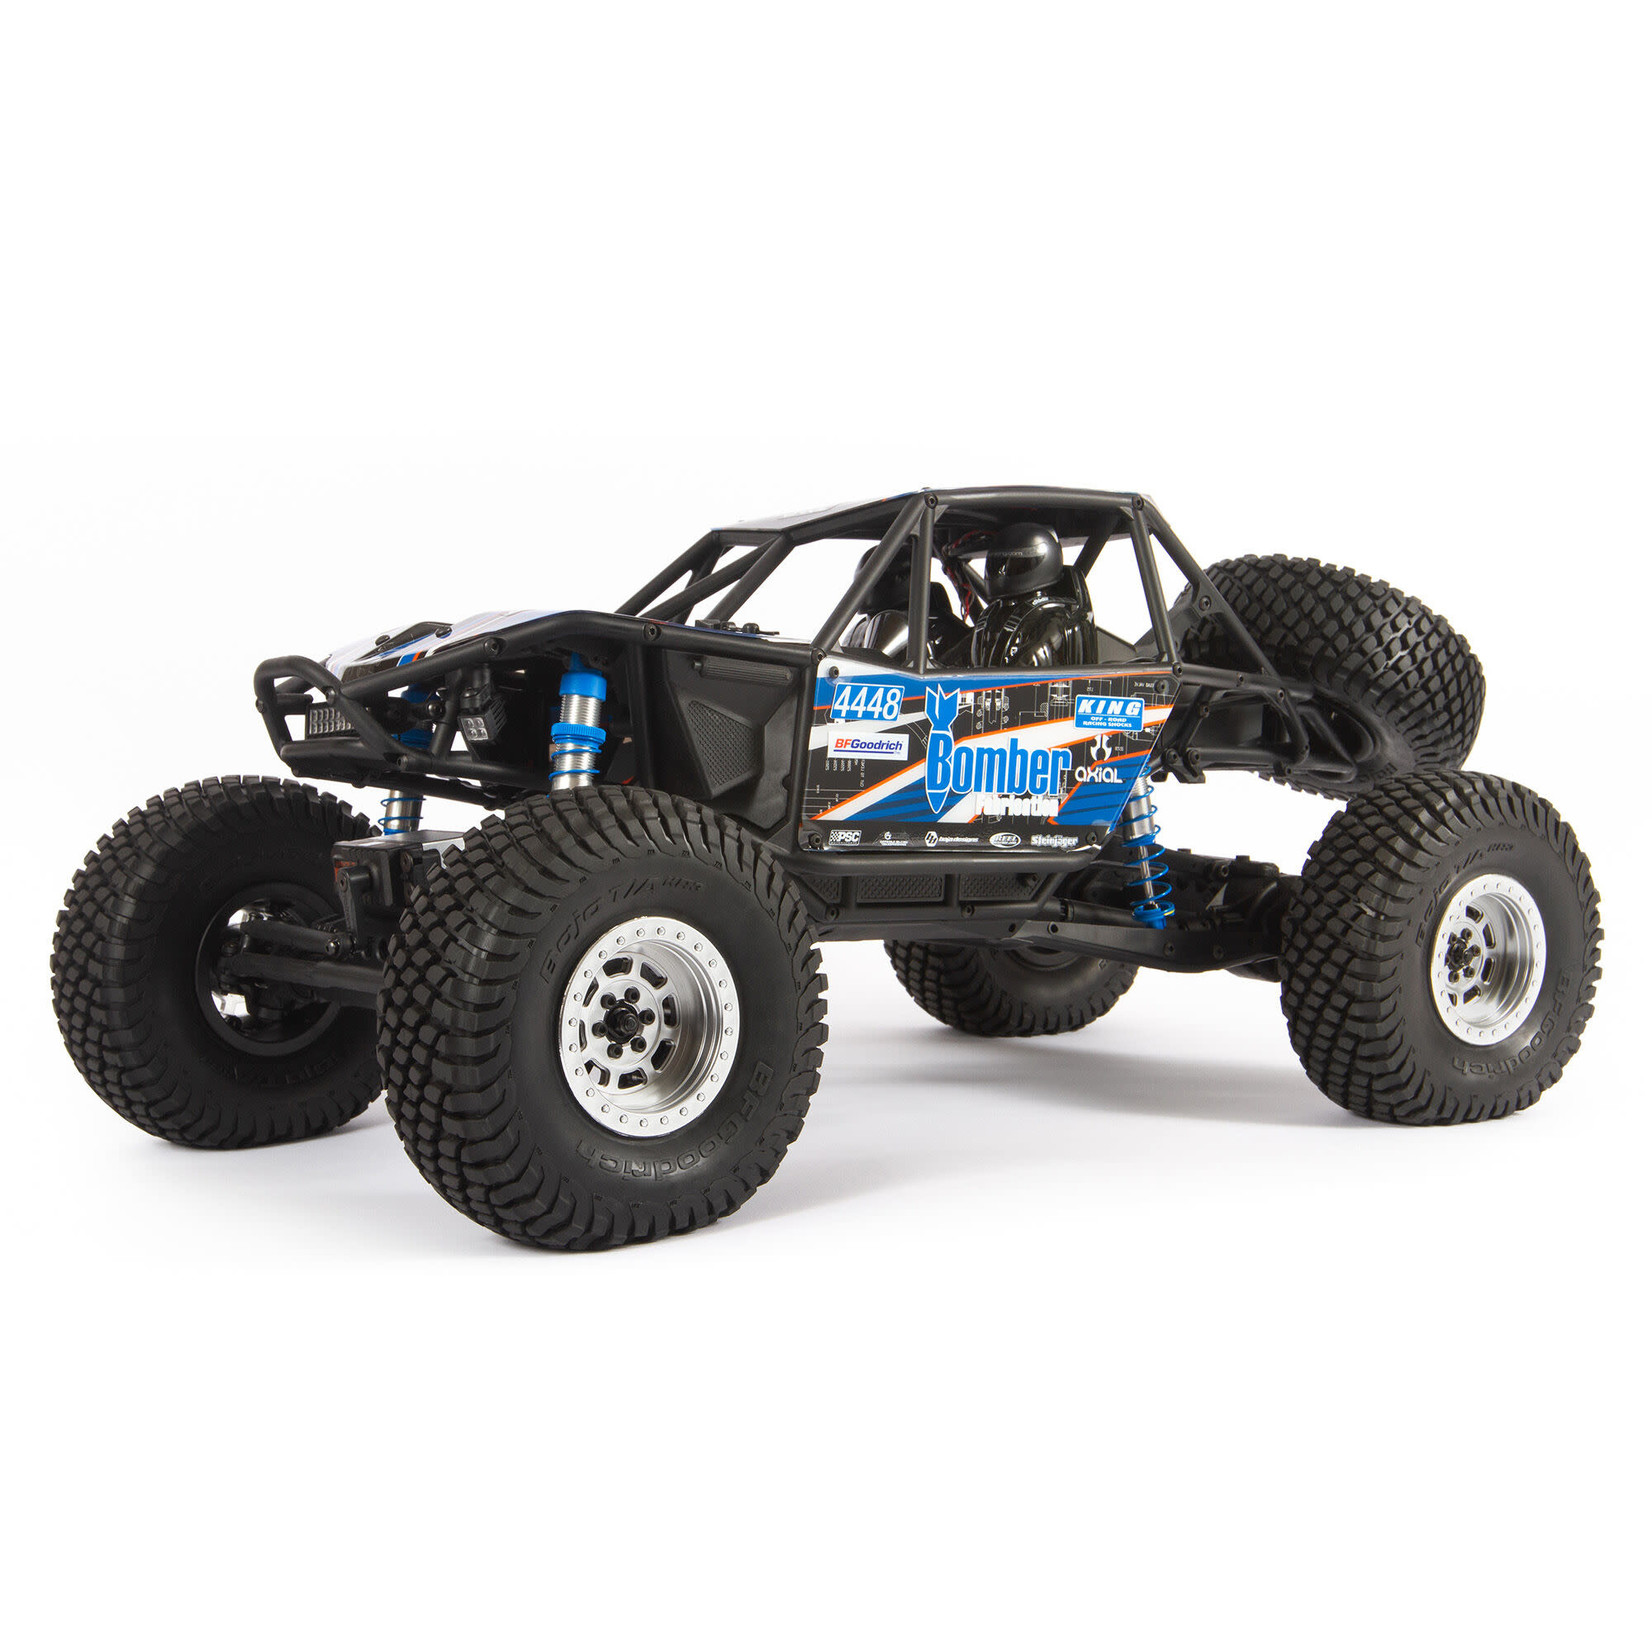 Axial AXI03016 Axial RR10 Bomber 1/10th 4wd RTR